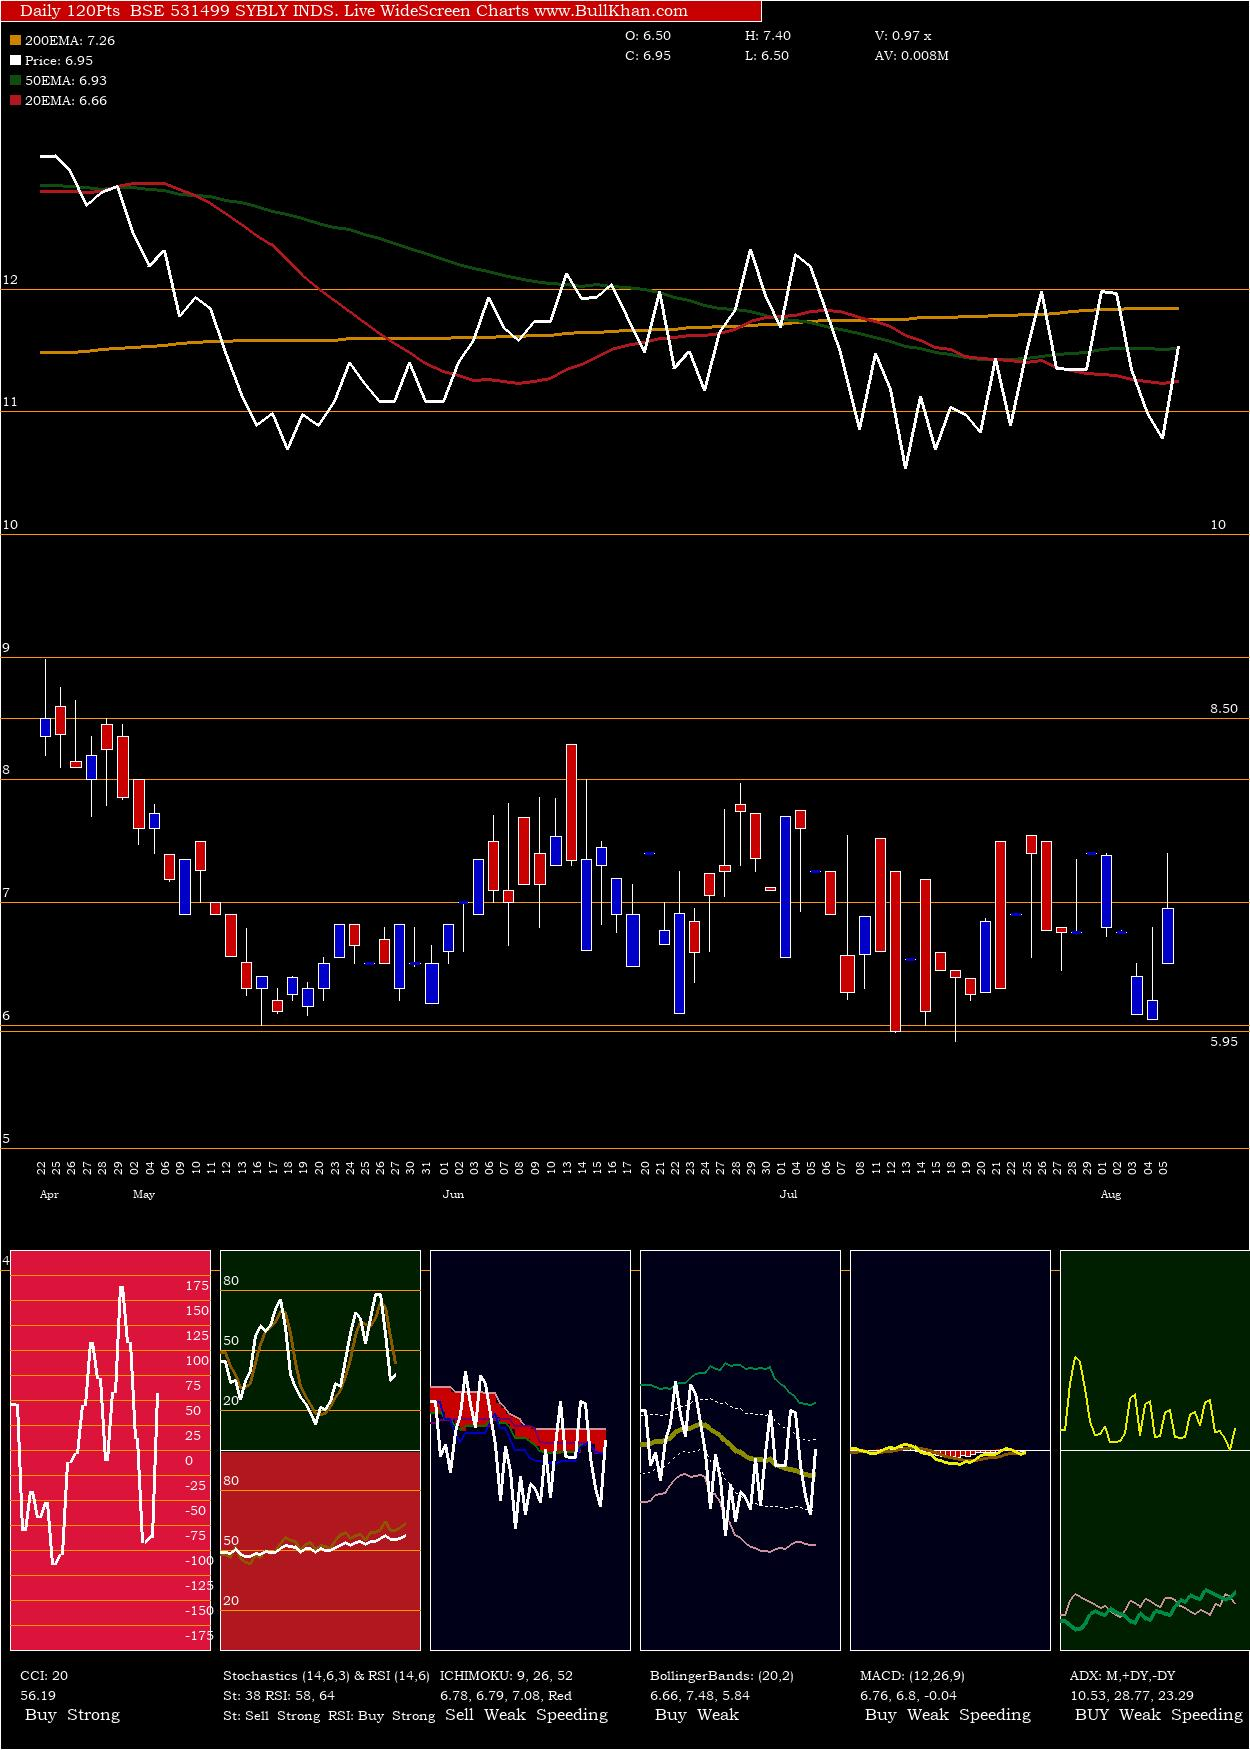 Sybly Inds charts and indicators